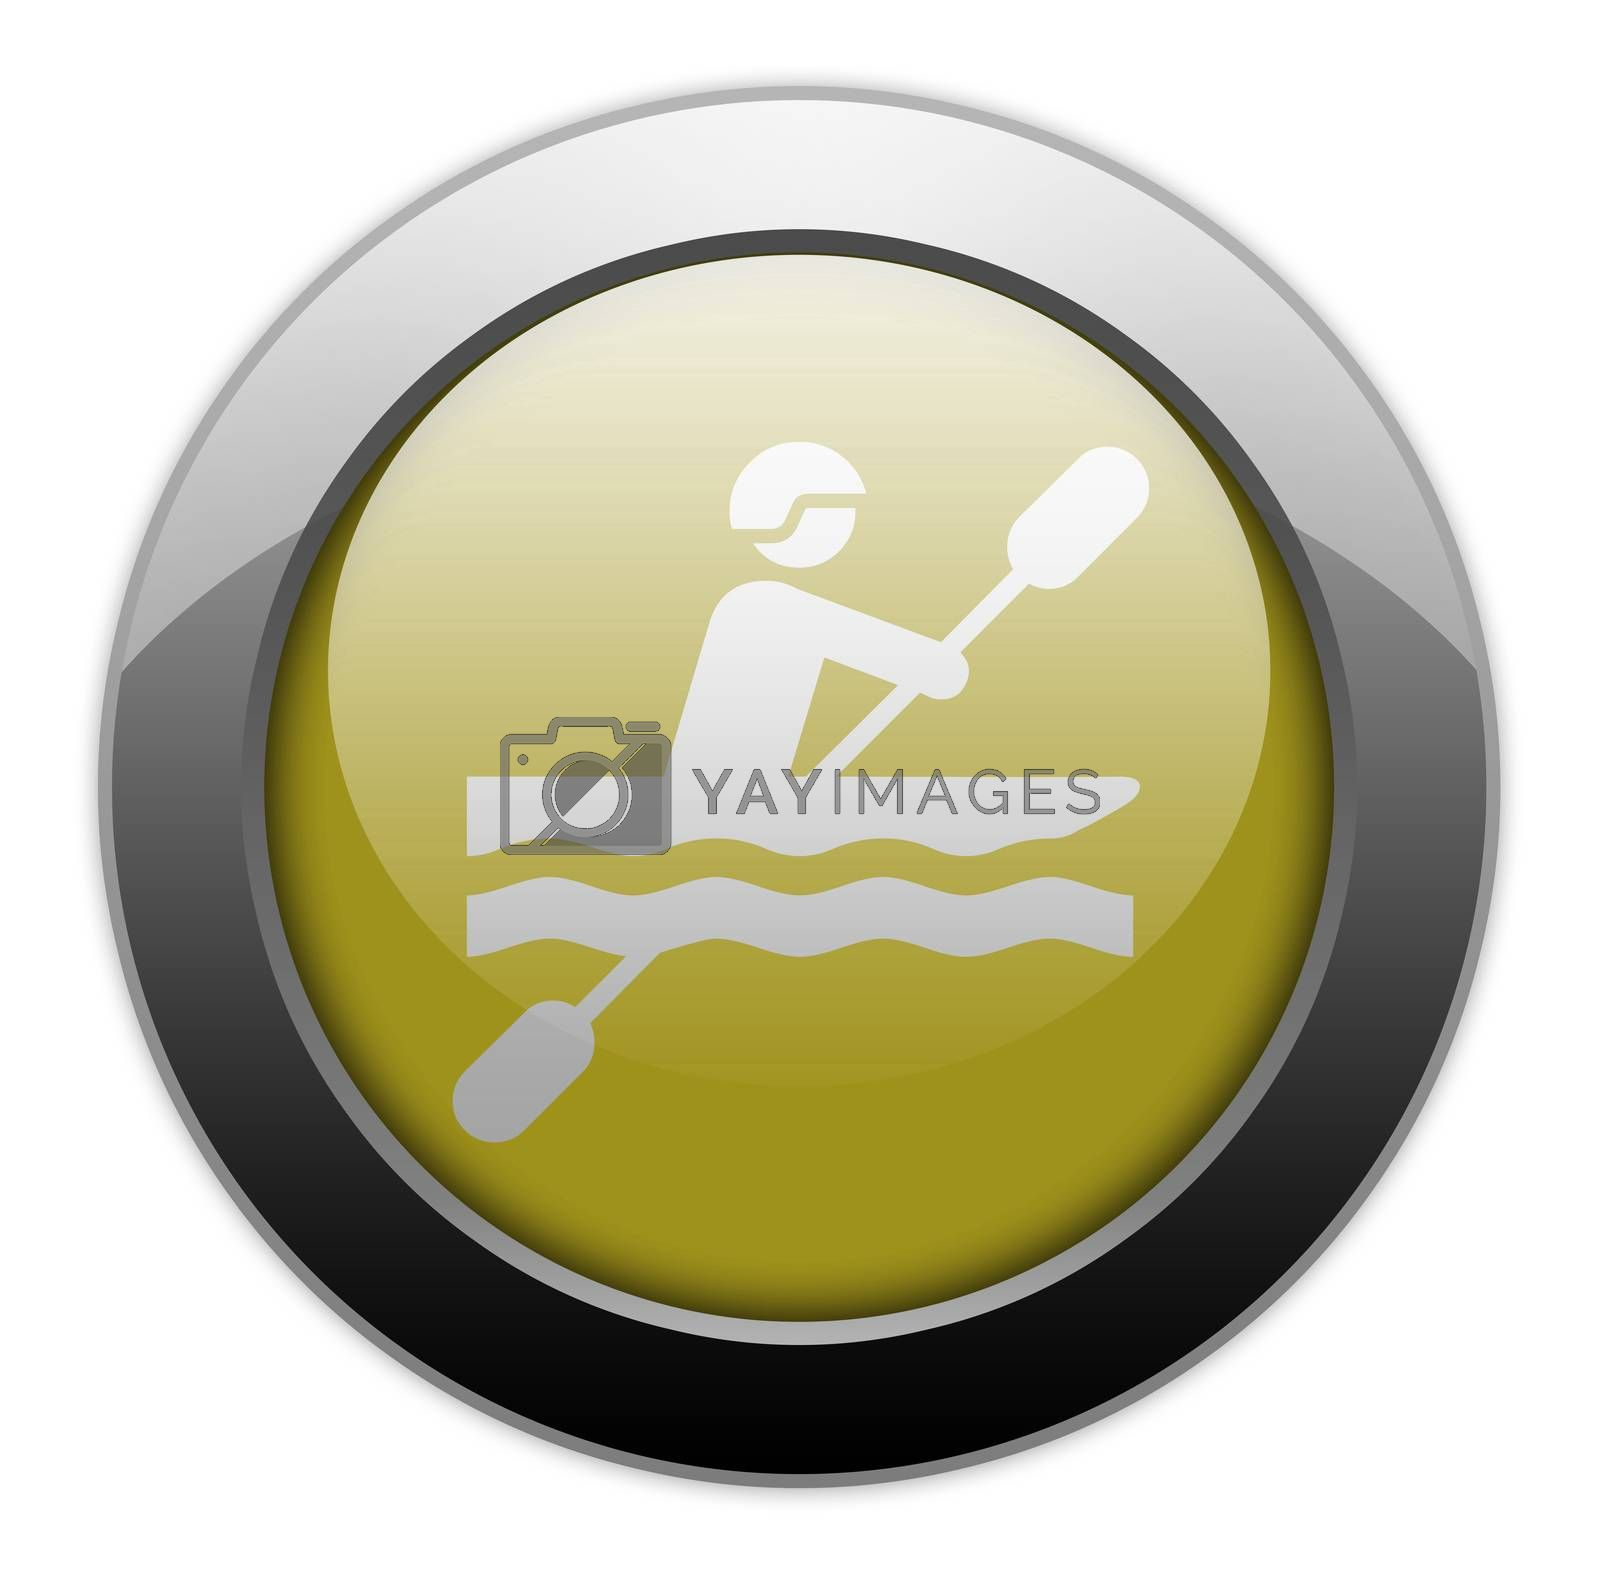 Icon, Button, Pictogram Kayaking by mindscanner